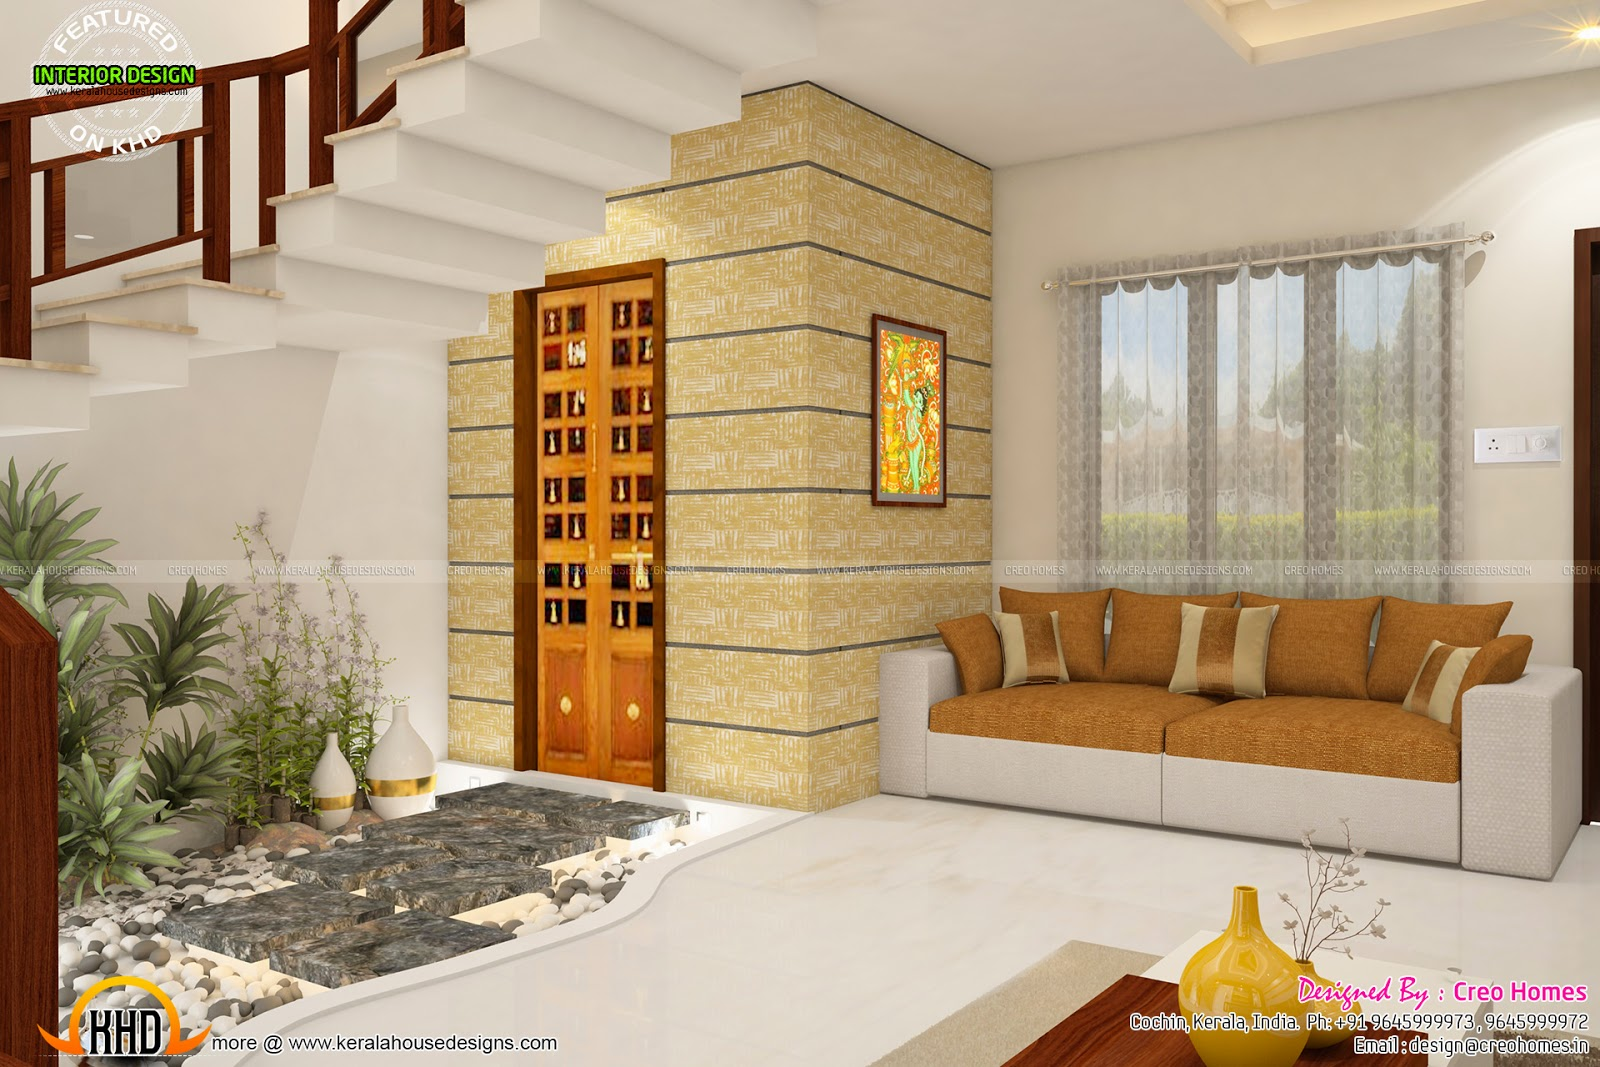 Total home interior solutions by creo homes kerala home design and floor plans Interior designing of your home